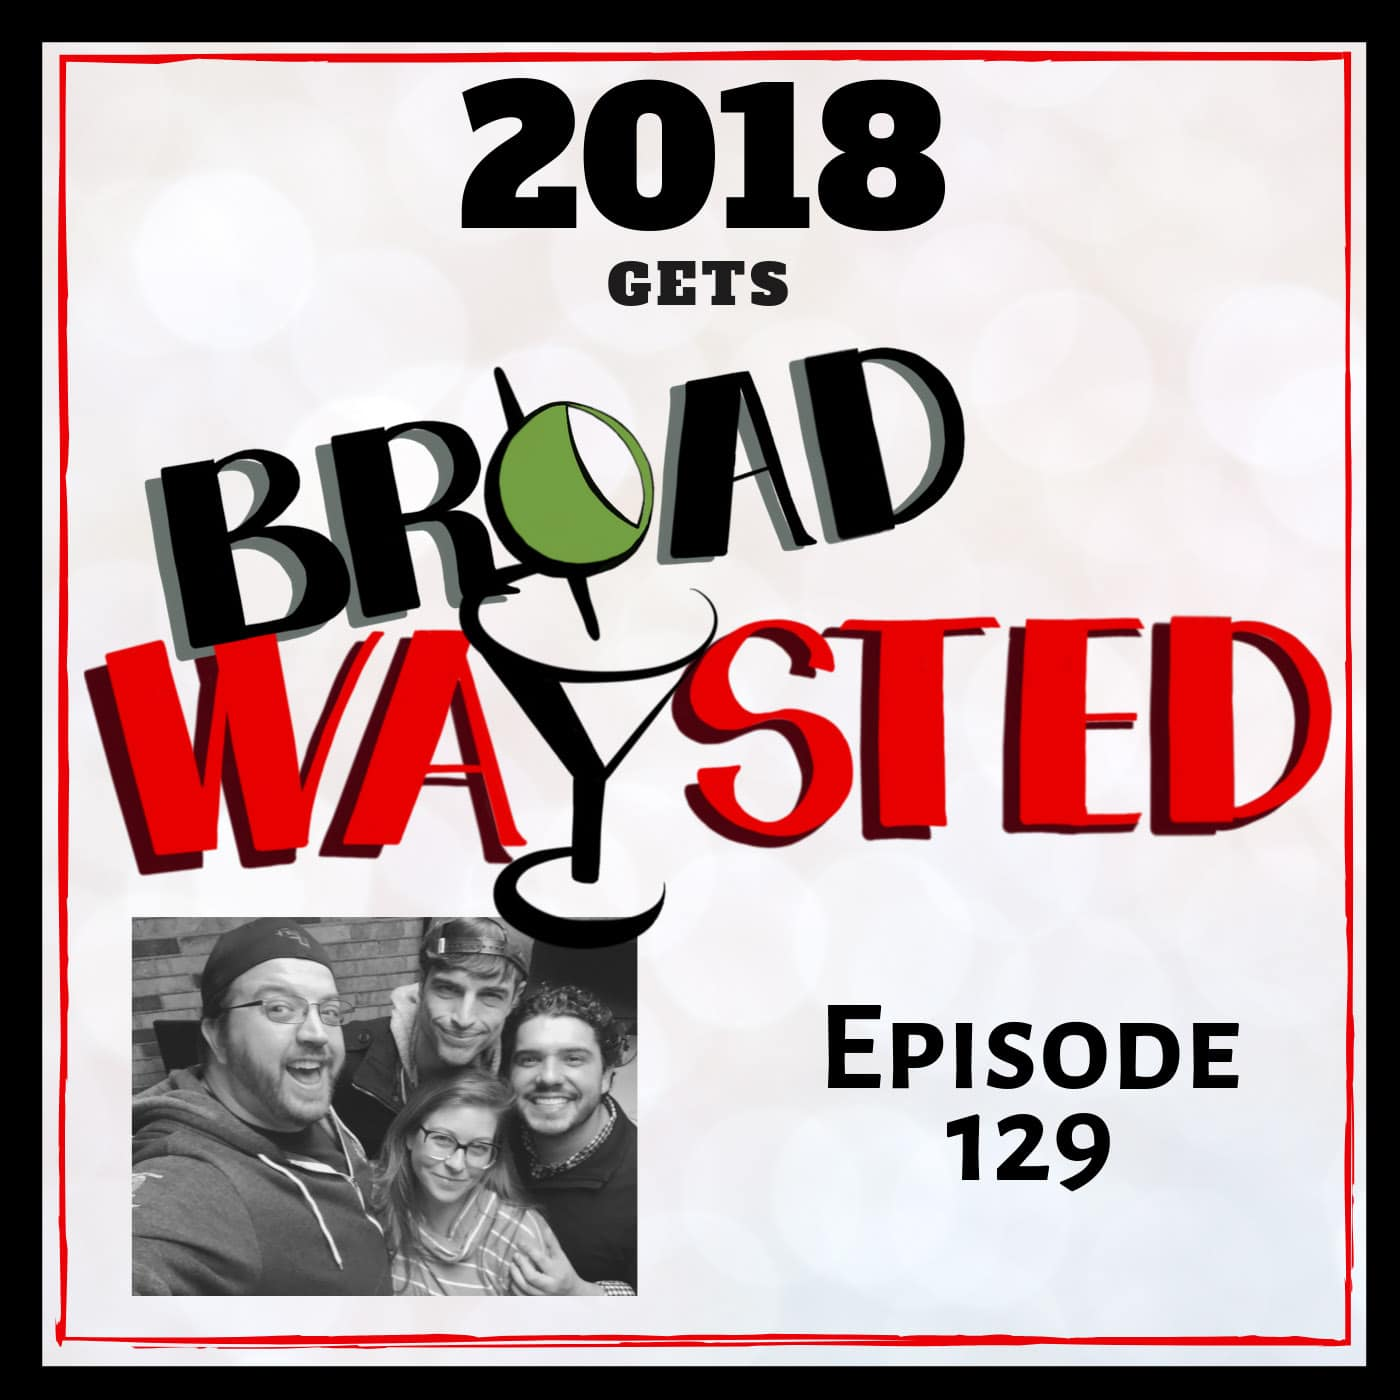 Broadwaysted Ep 129 2018 (1)